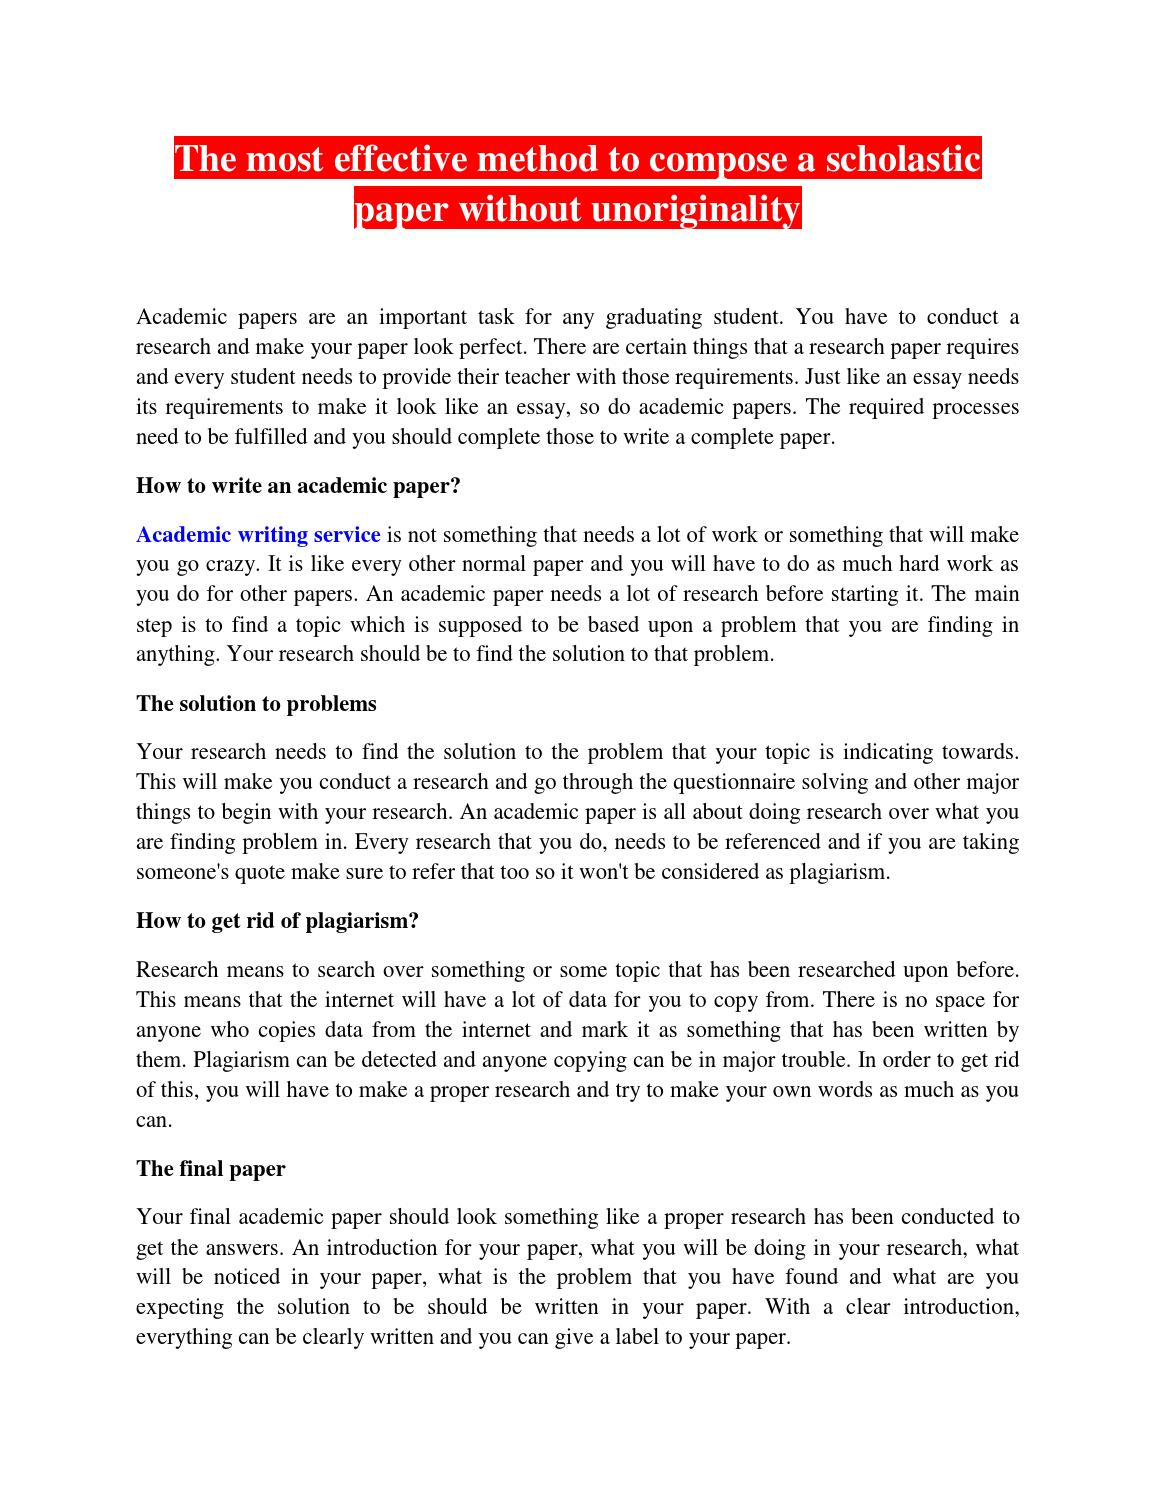 Sickle cell anemia how to write an essay